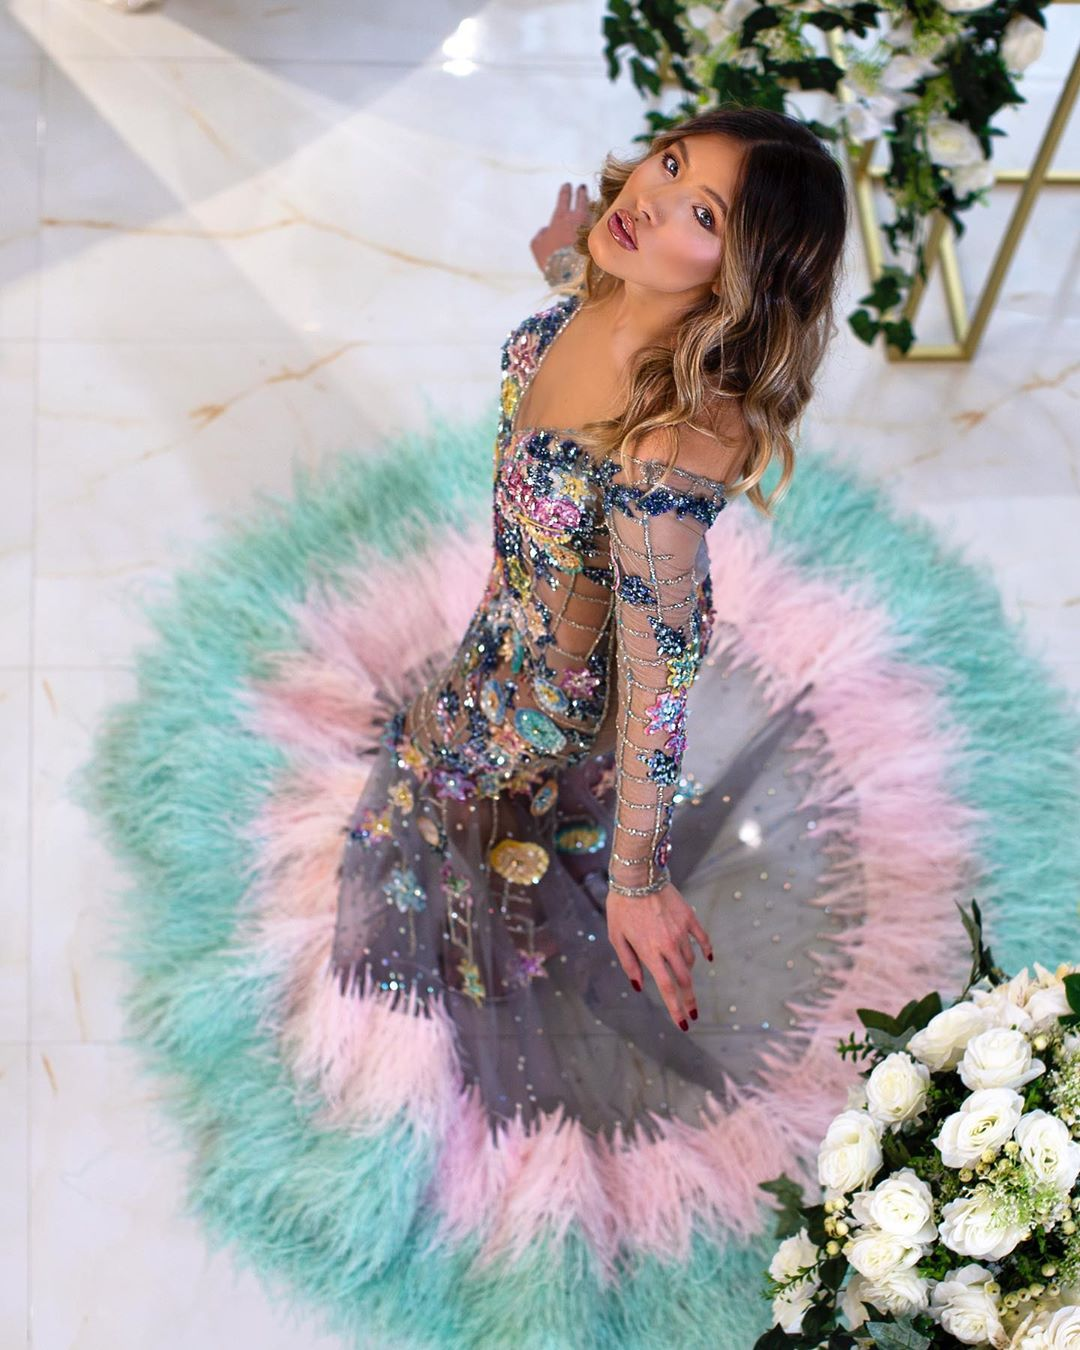 Long Sleeves Sheer Colorful Sequin Flower Dress Rhinestones, Beads and V-Neck